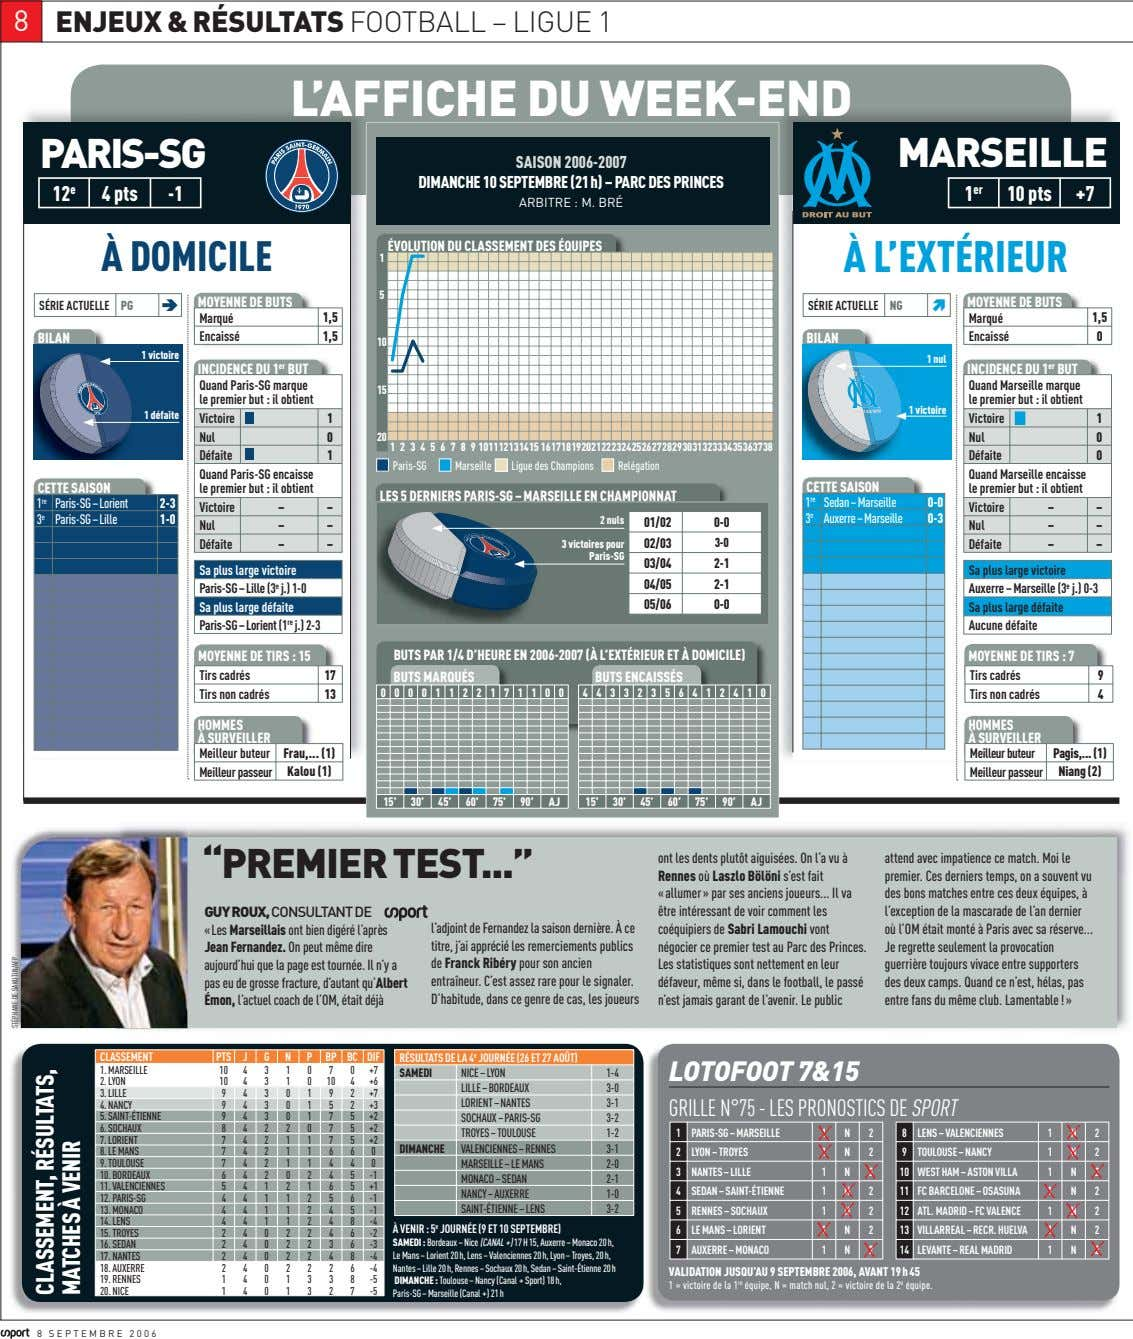 8 ENJEUX & RÉSULTATS FOOTBALL – LIGUE 1 L'AFFICHE DU WEEK-END PARIS-SG MARSEILLE SAISON 2006-2007